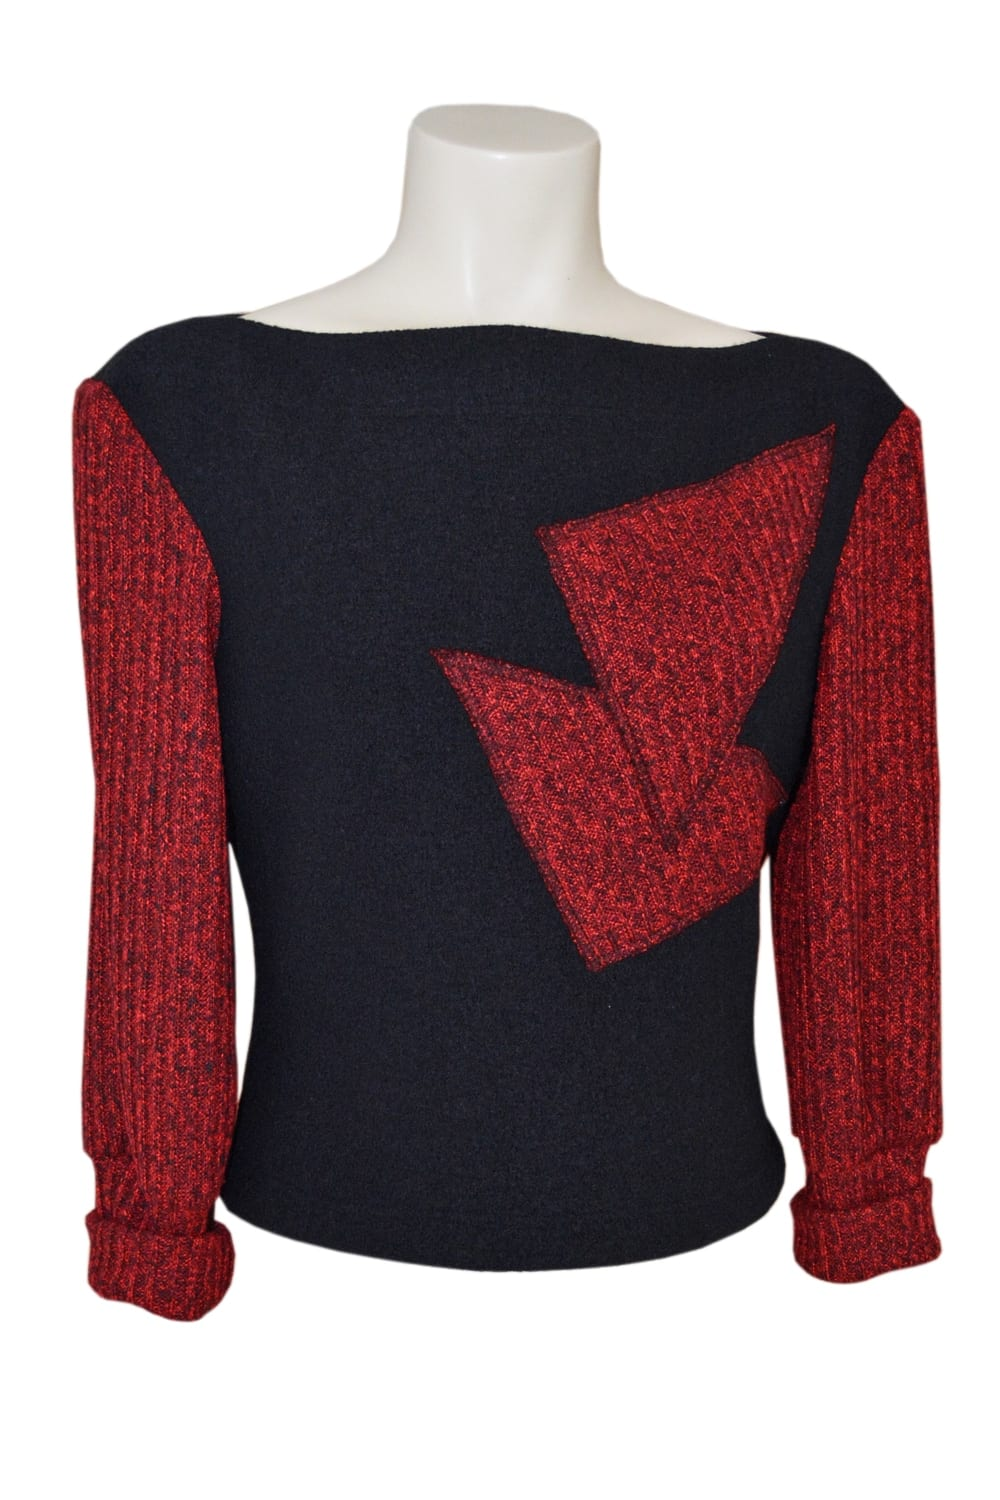 Winter red wool sweater Erik Schaix. Sleeves and patterns placed in red heathered corduroy.